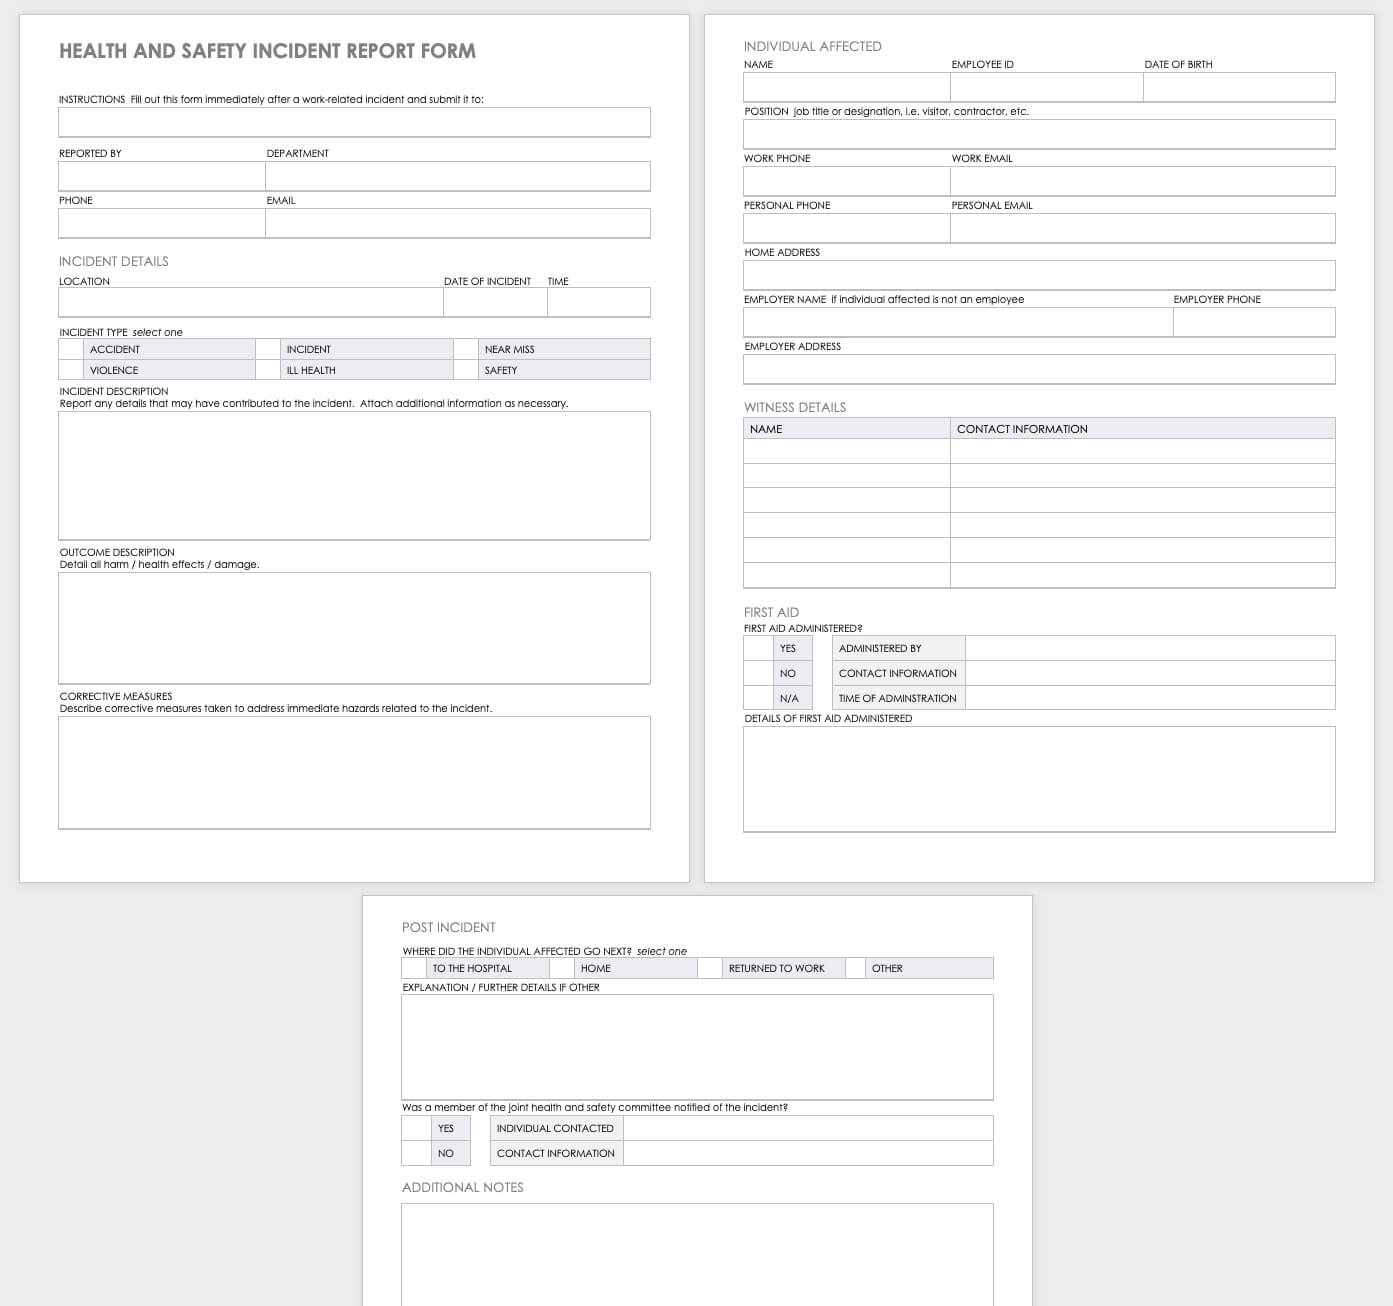 Free Workplace Accident Report Templates | Smartsheet Intended For Health And Safety Incident Report Form Template